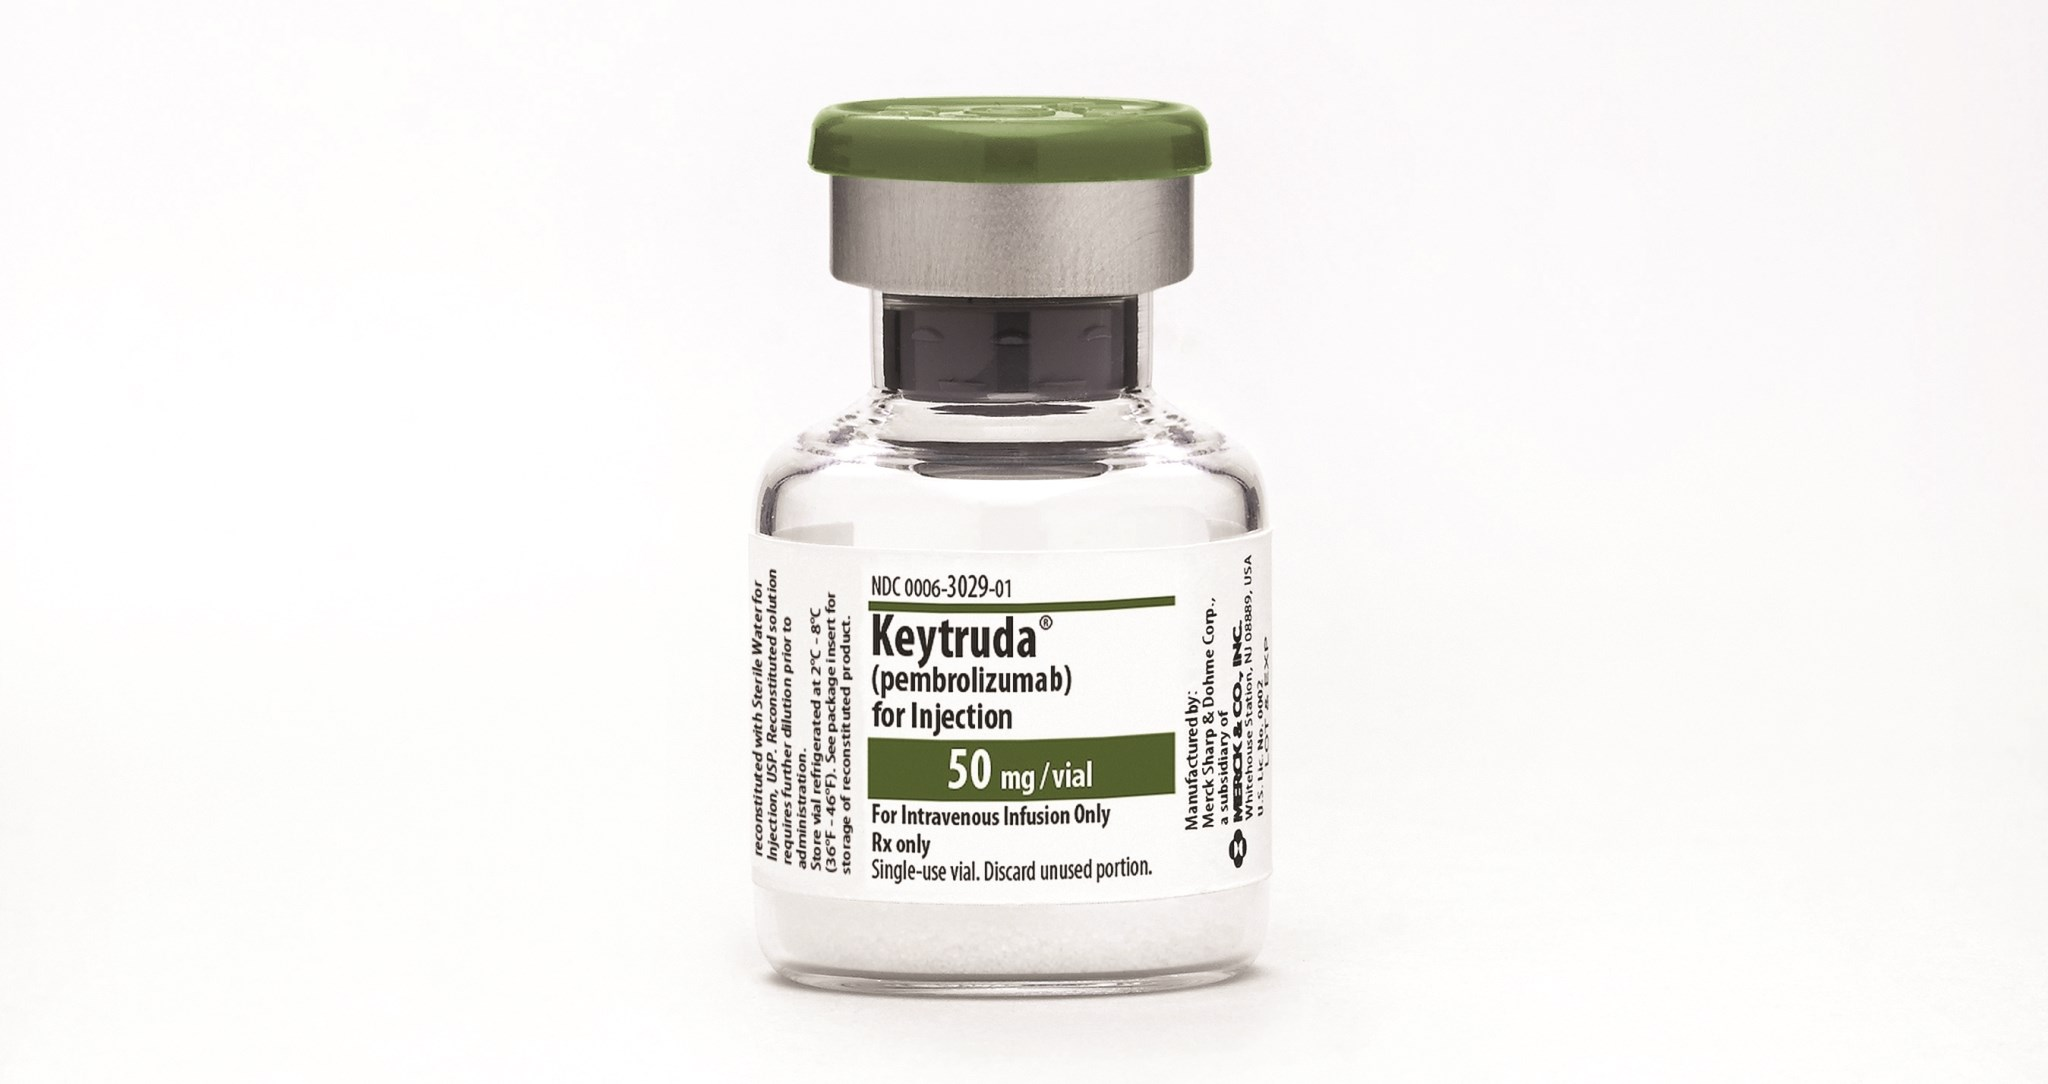 Keytruda's label confers edge for Opdivo